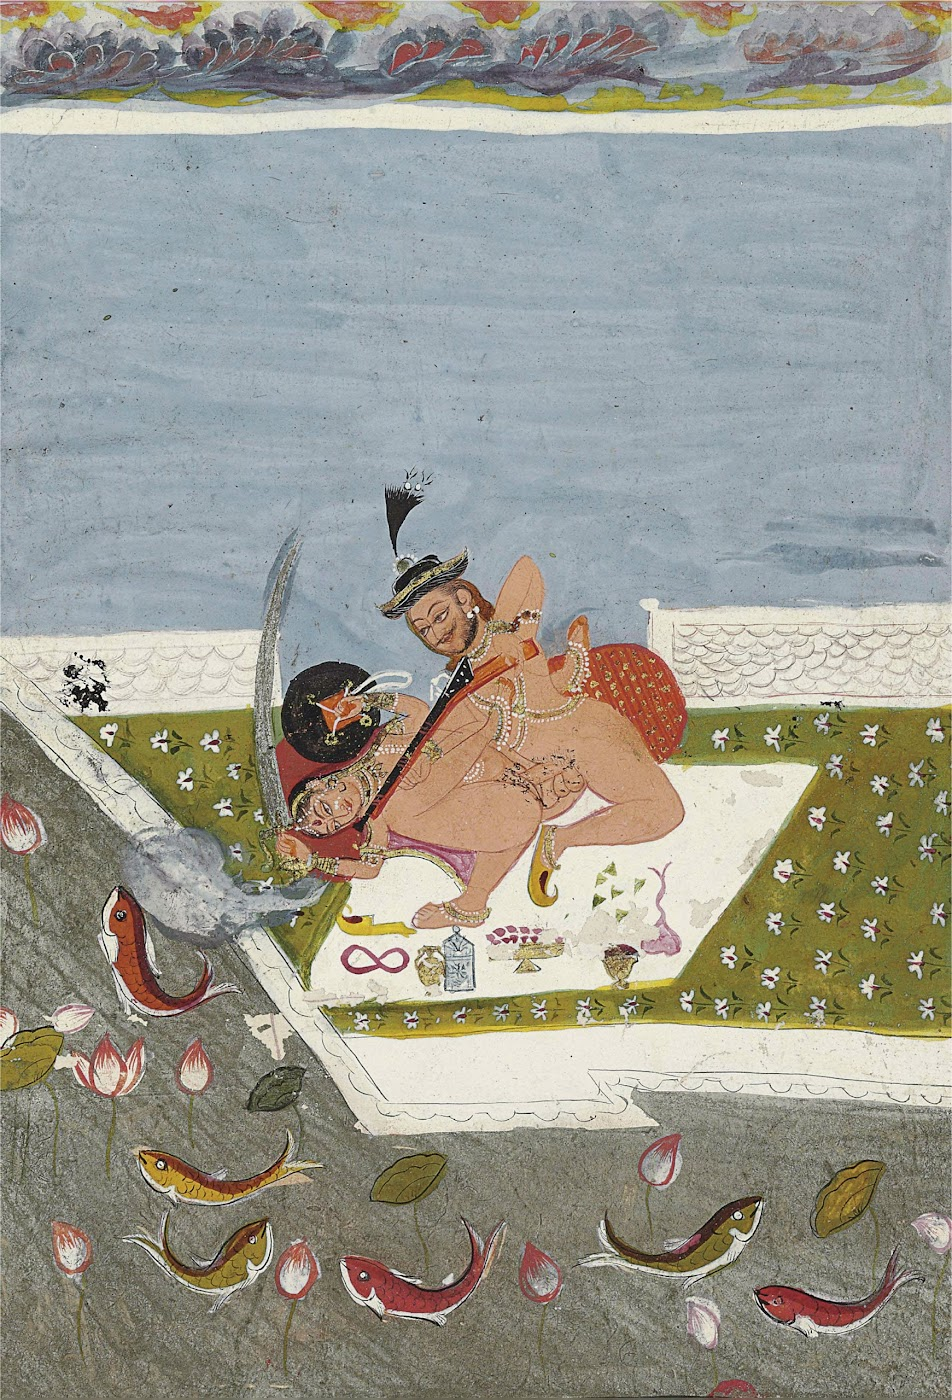 Sporting Couple Engaged in Lovemaking Holding Various Weapons - Rajput Painting, Probably Bundi, Late 18th Century